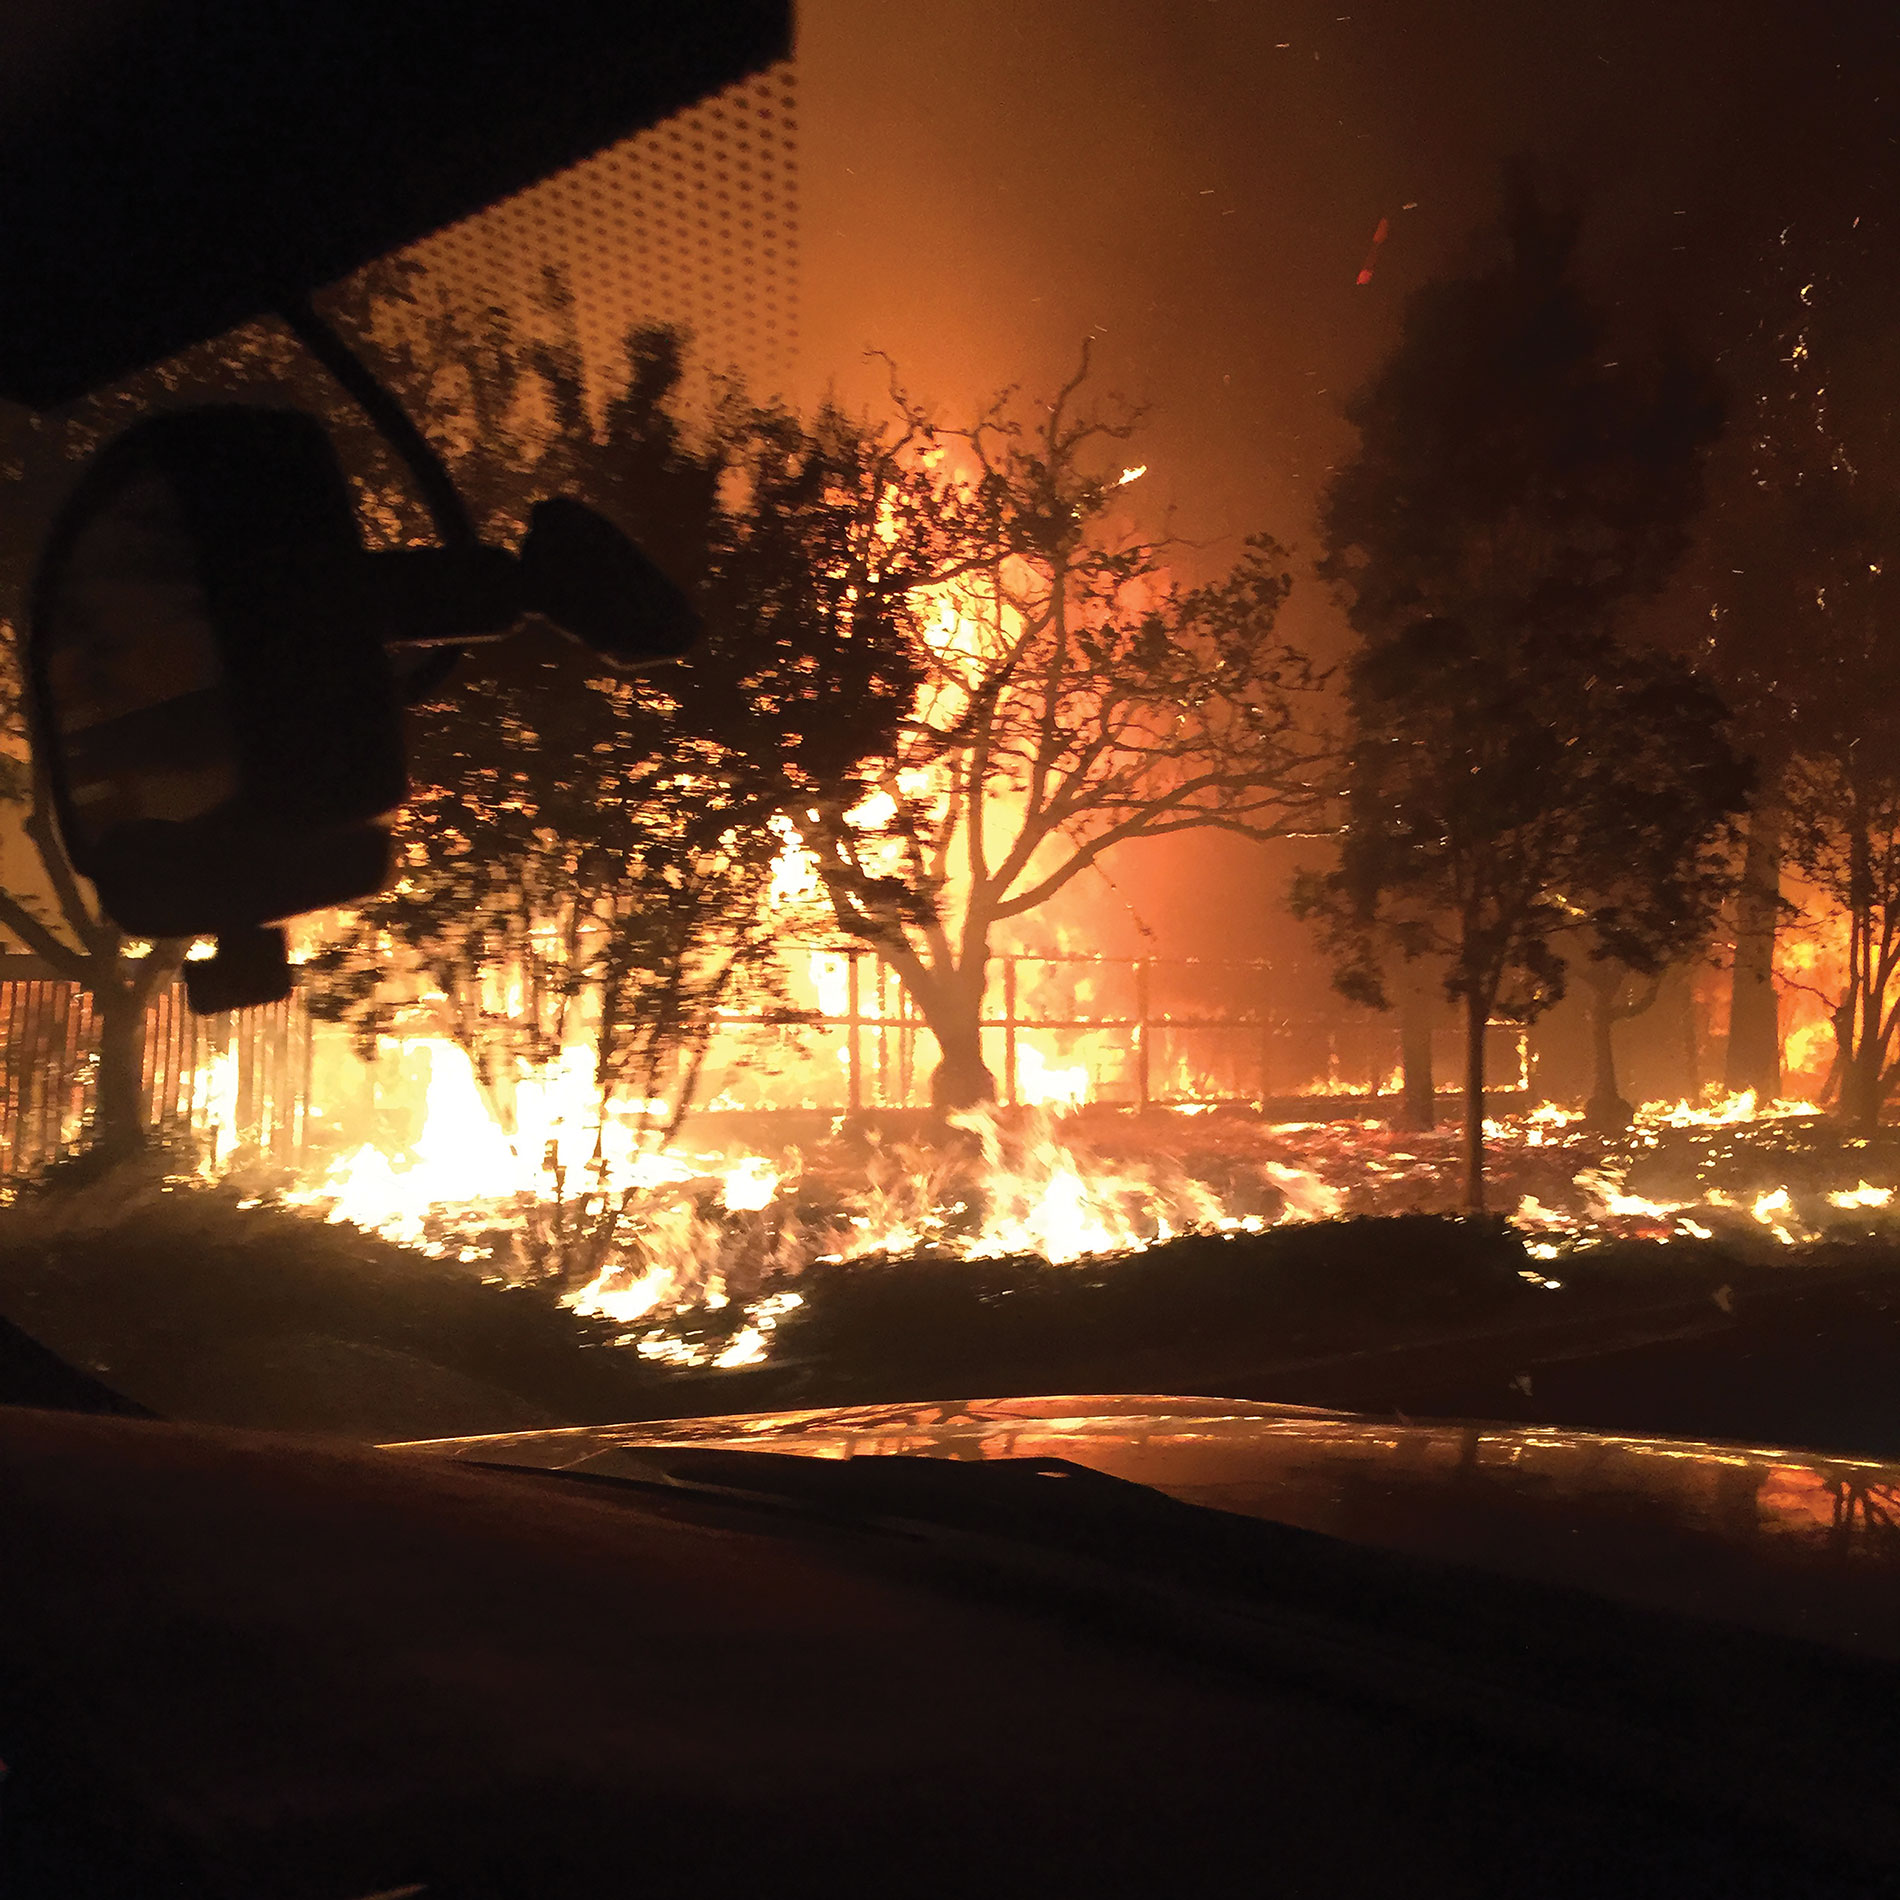 The Northern California wildfires blazed a path of destruction through the Sonoma County town of Kenwood last October. Credit: Joe Lunardi Electric Co.